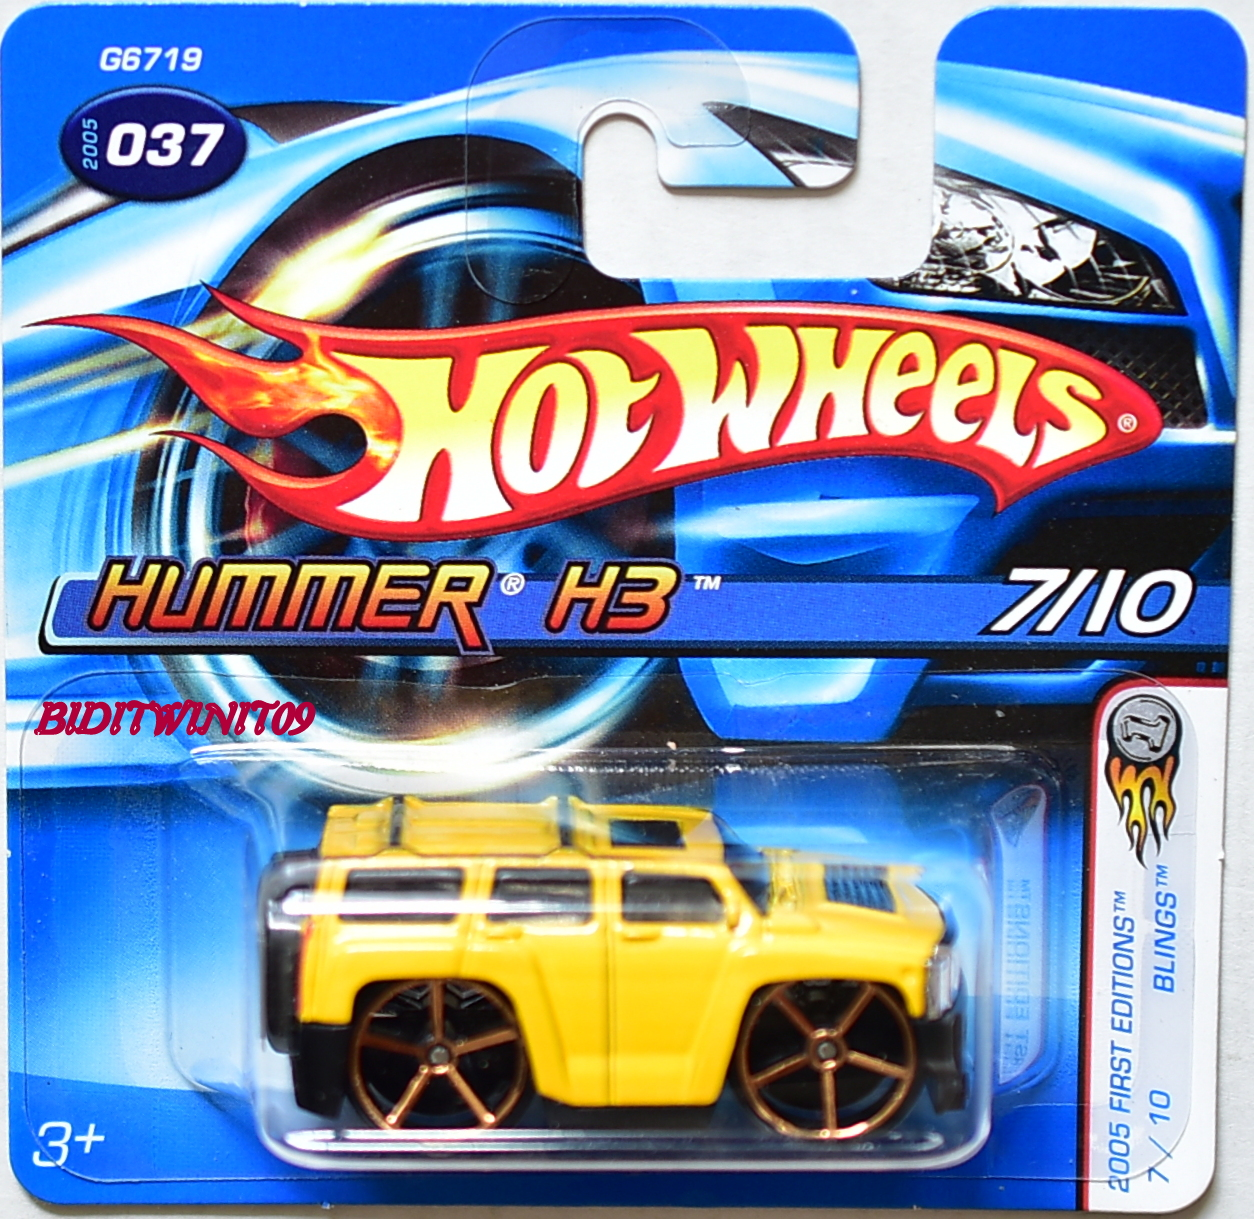 HOT WHEELS 2005 FIRST EDITIONS HUMMER H3 SHORTCARD